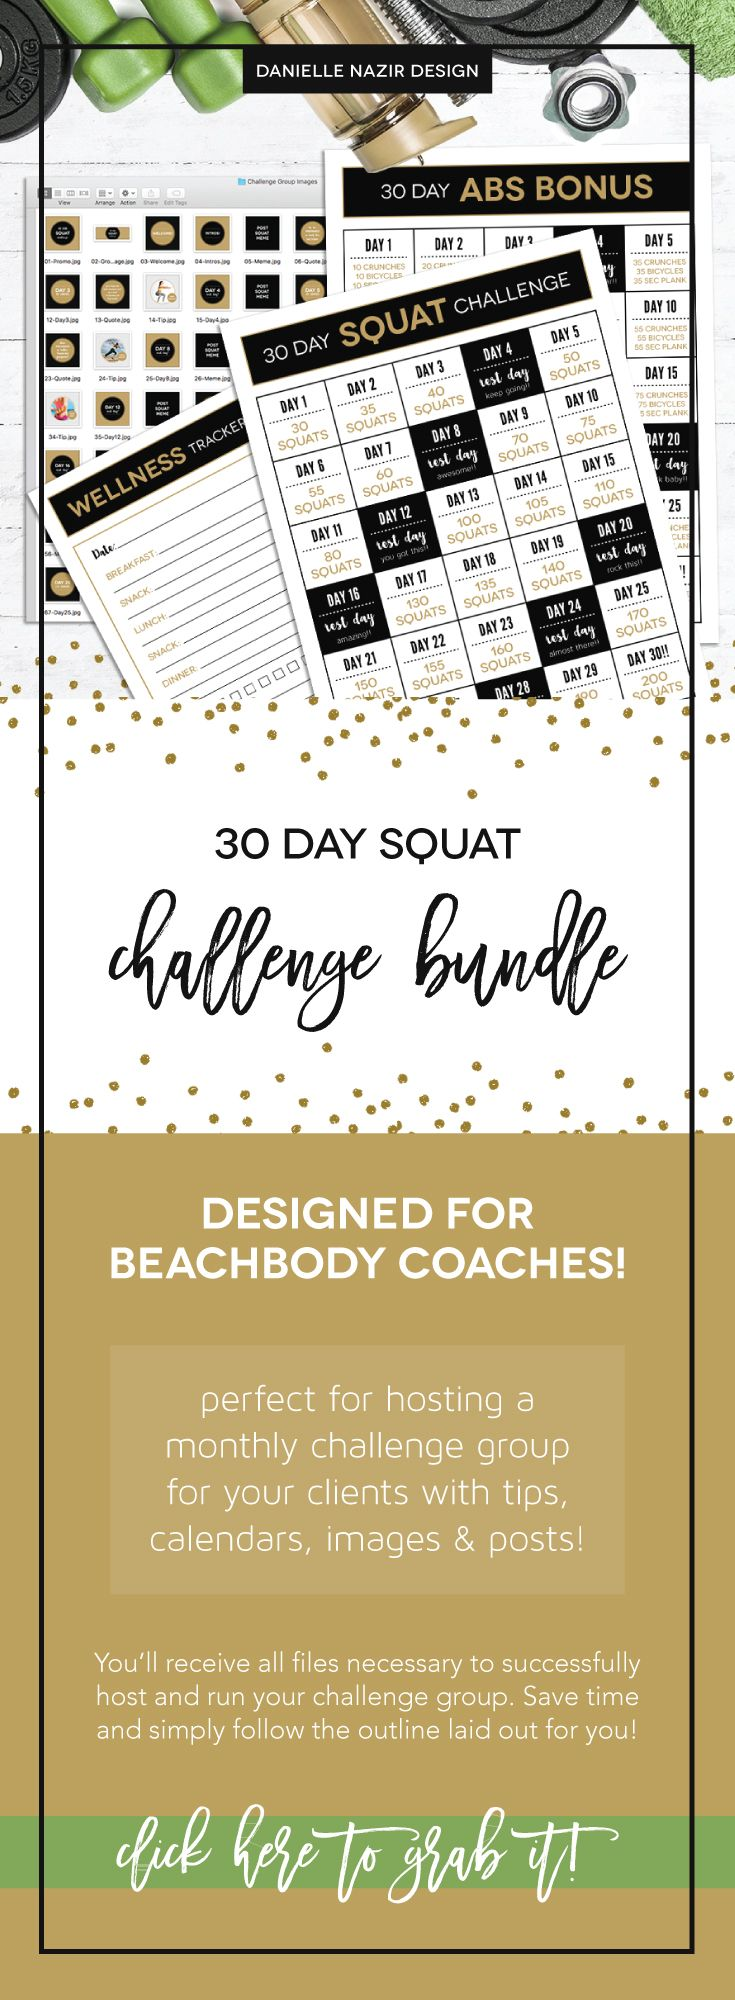 30 Day Squat Challenge Bundle Kit For Coaches! The Perfect Kit For Hosting  A Monthly